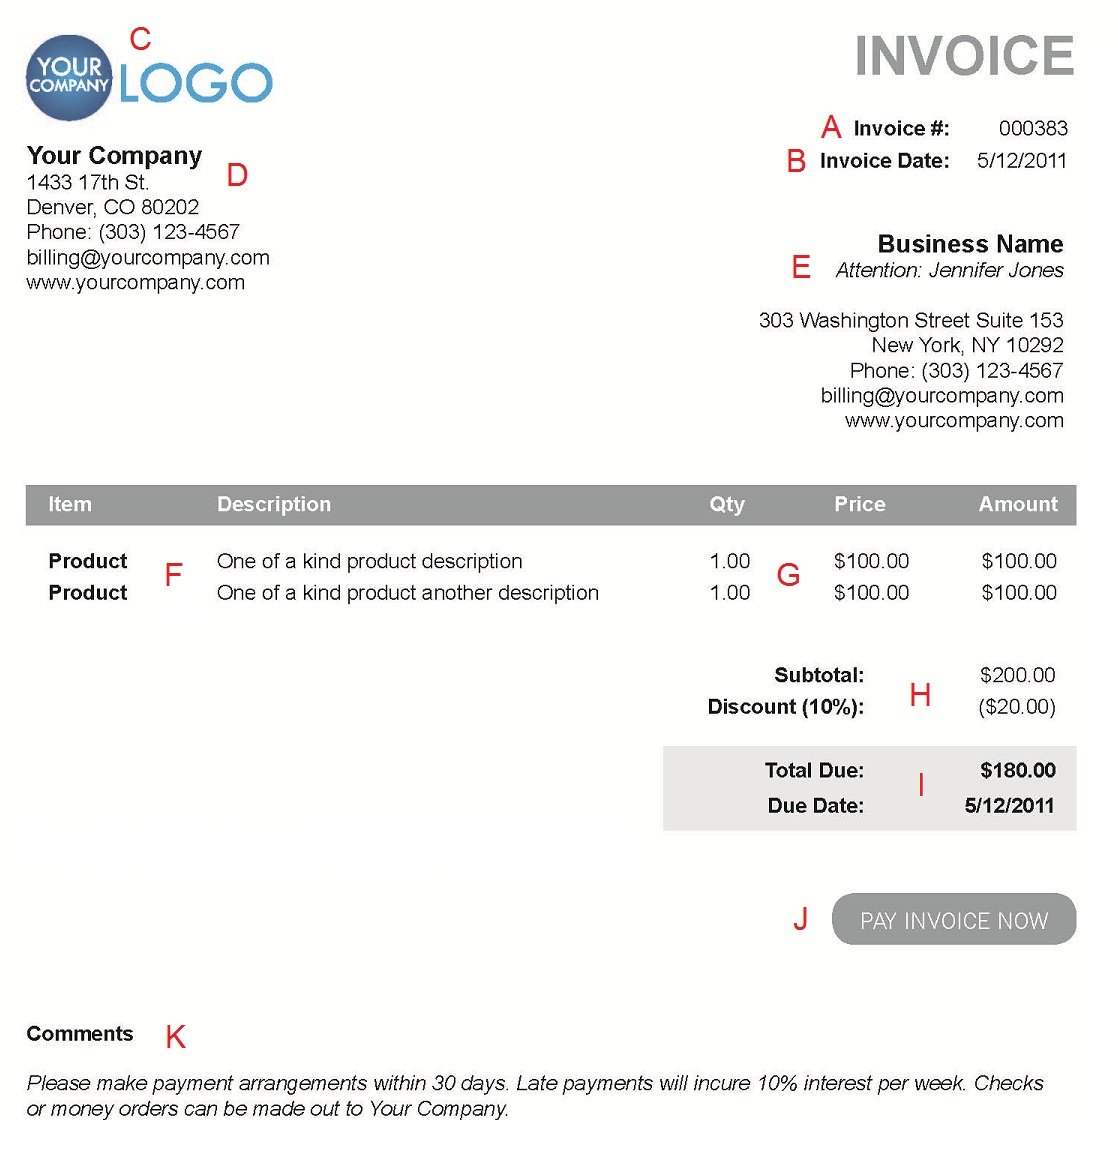 Carsforlessus  Remarkable The  Different Sections Of An Electronic Payment Invoice With Interesting A  With Delightful Access Invoice Template Free Also Advantages Of Invoice Discounting In Addition Invoice Finance Broker And Simple Invoices Template As Well As Self Employed Invoices Additionally Invoices And Estimates Software From Paysimplecom With Carsforlessus  Interesting The  Different Sections Of An Electronic Payment Invoice With Delightful A  And Remarkable Access Invoice Template Free Also Advantages Of Invoice Discounting In Addition Invoice Finance Broker From Paysimplecom